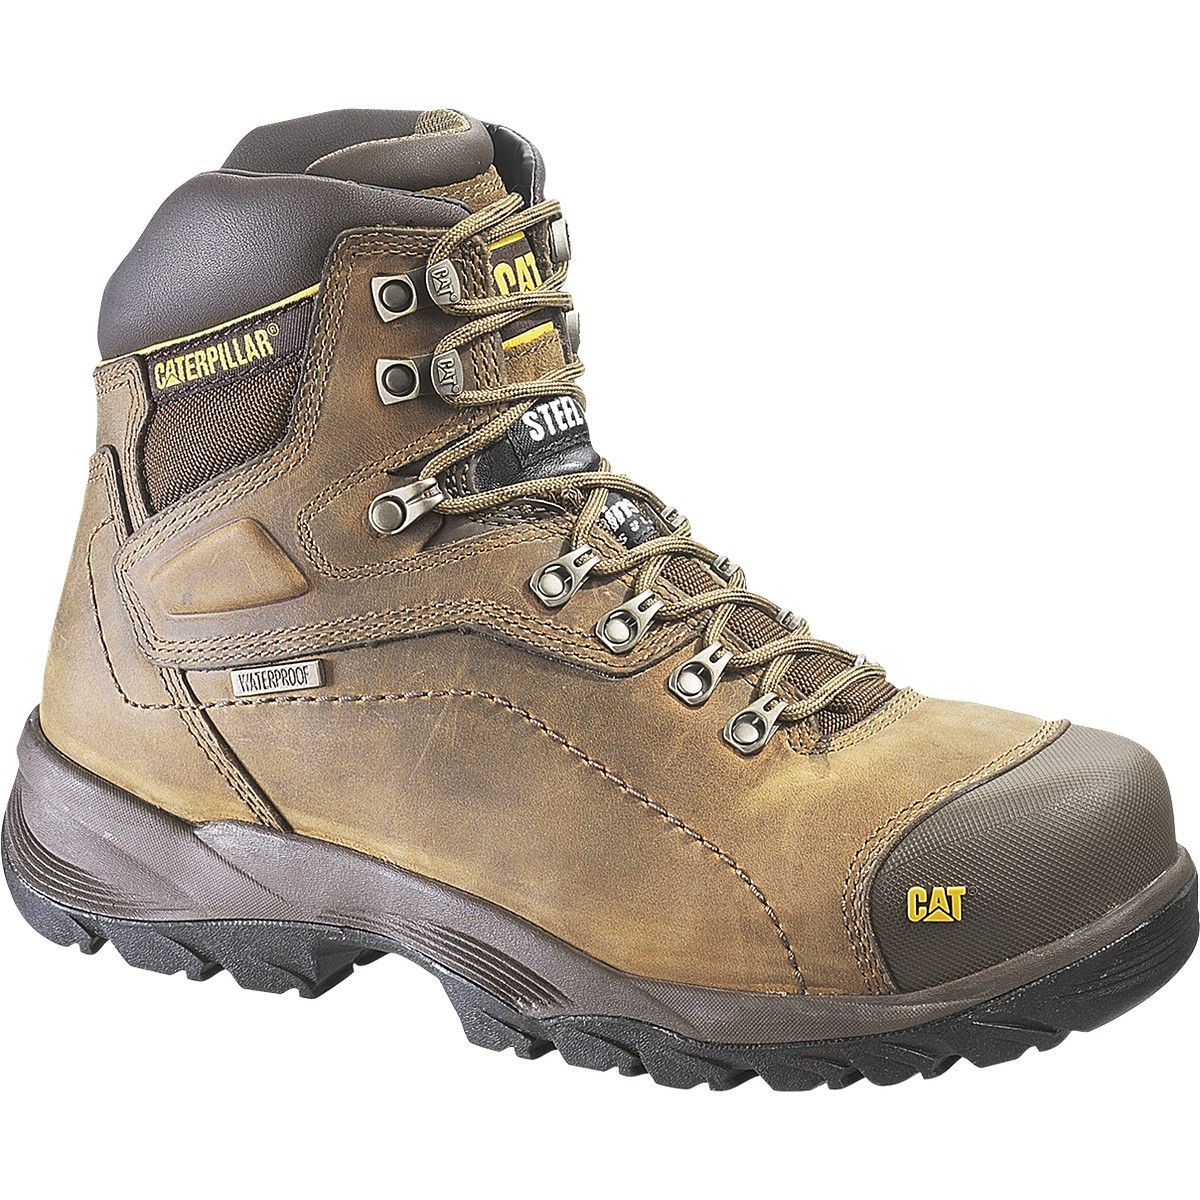 caterpillar shoes astm f2413-11 eh